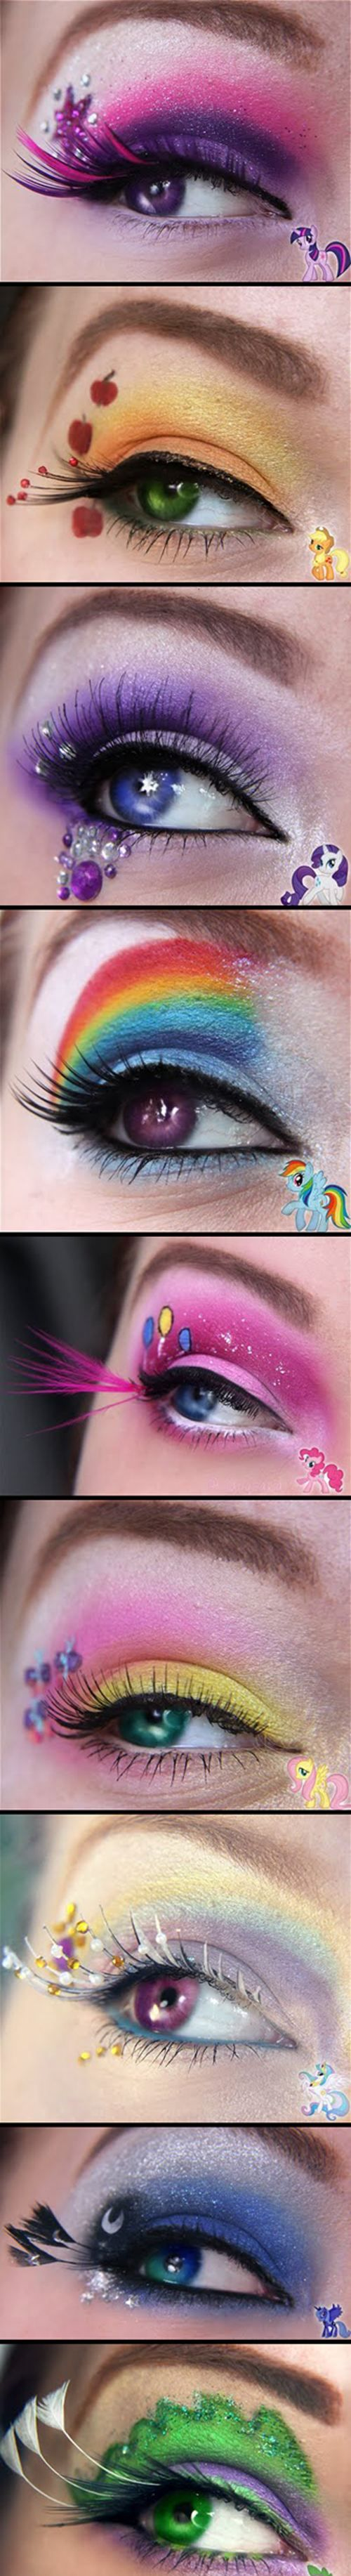 best eye catching images on pinterest makeup hairstyles and